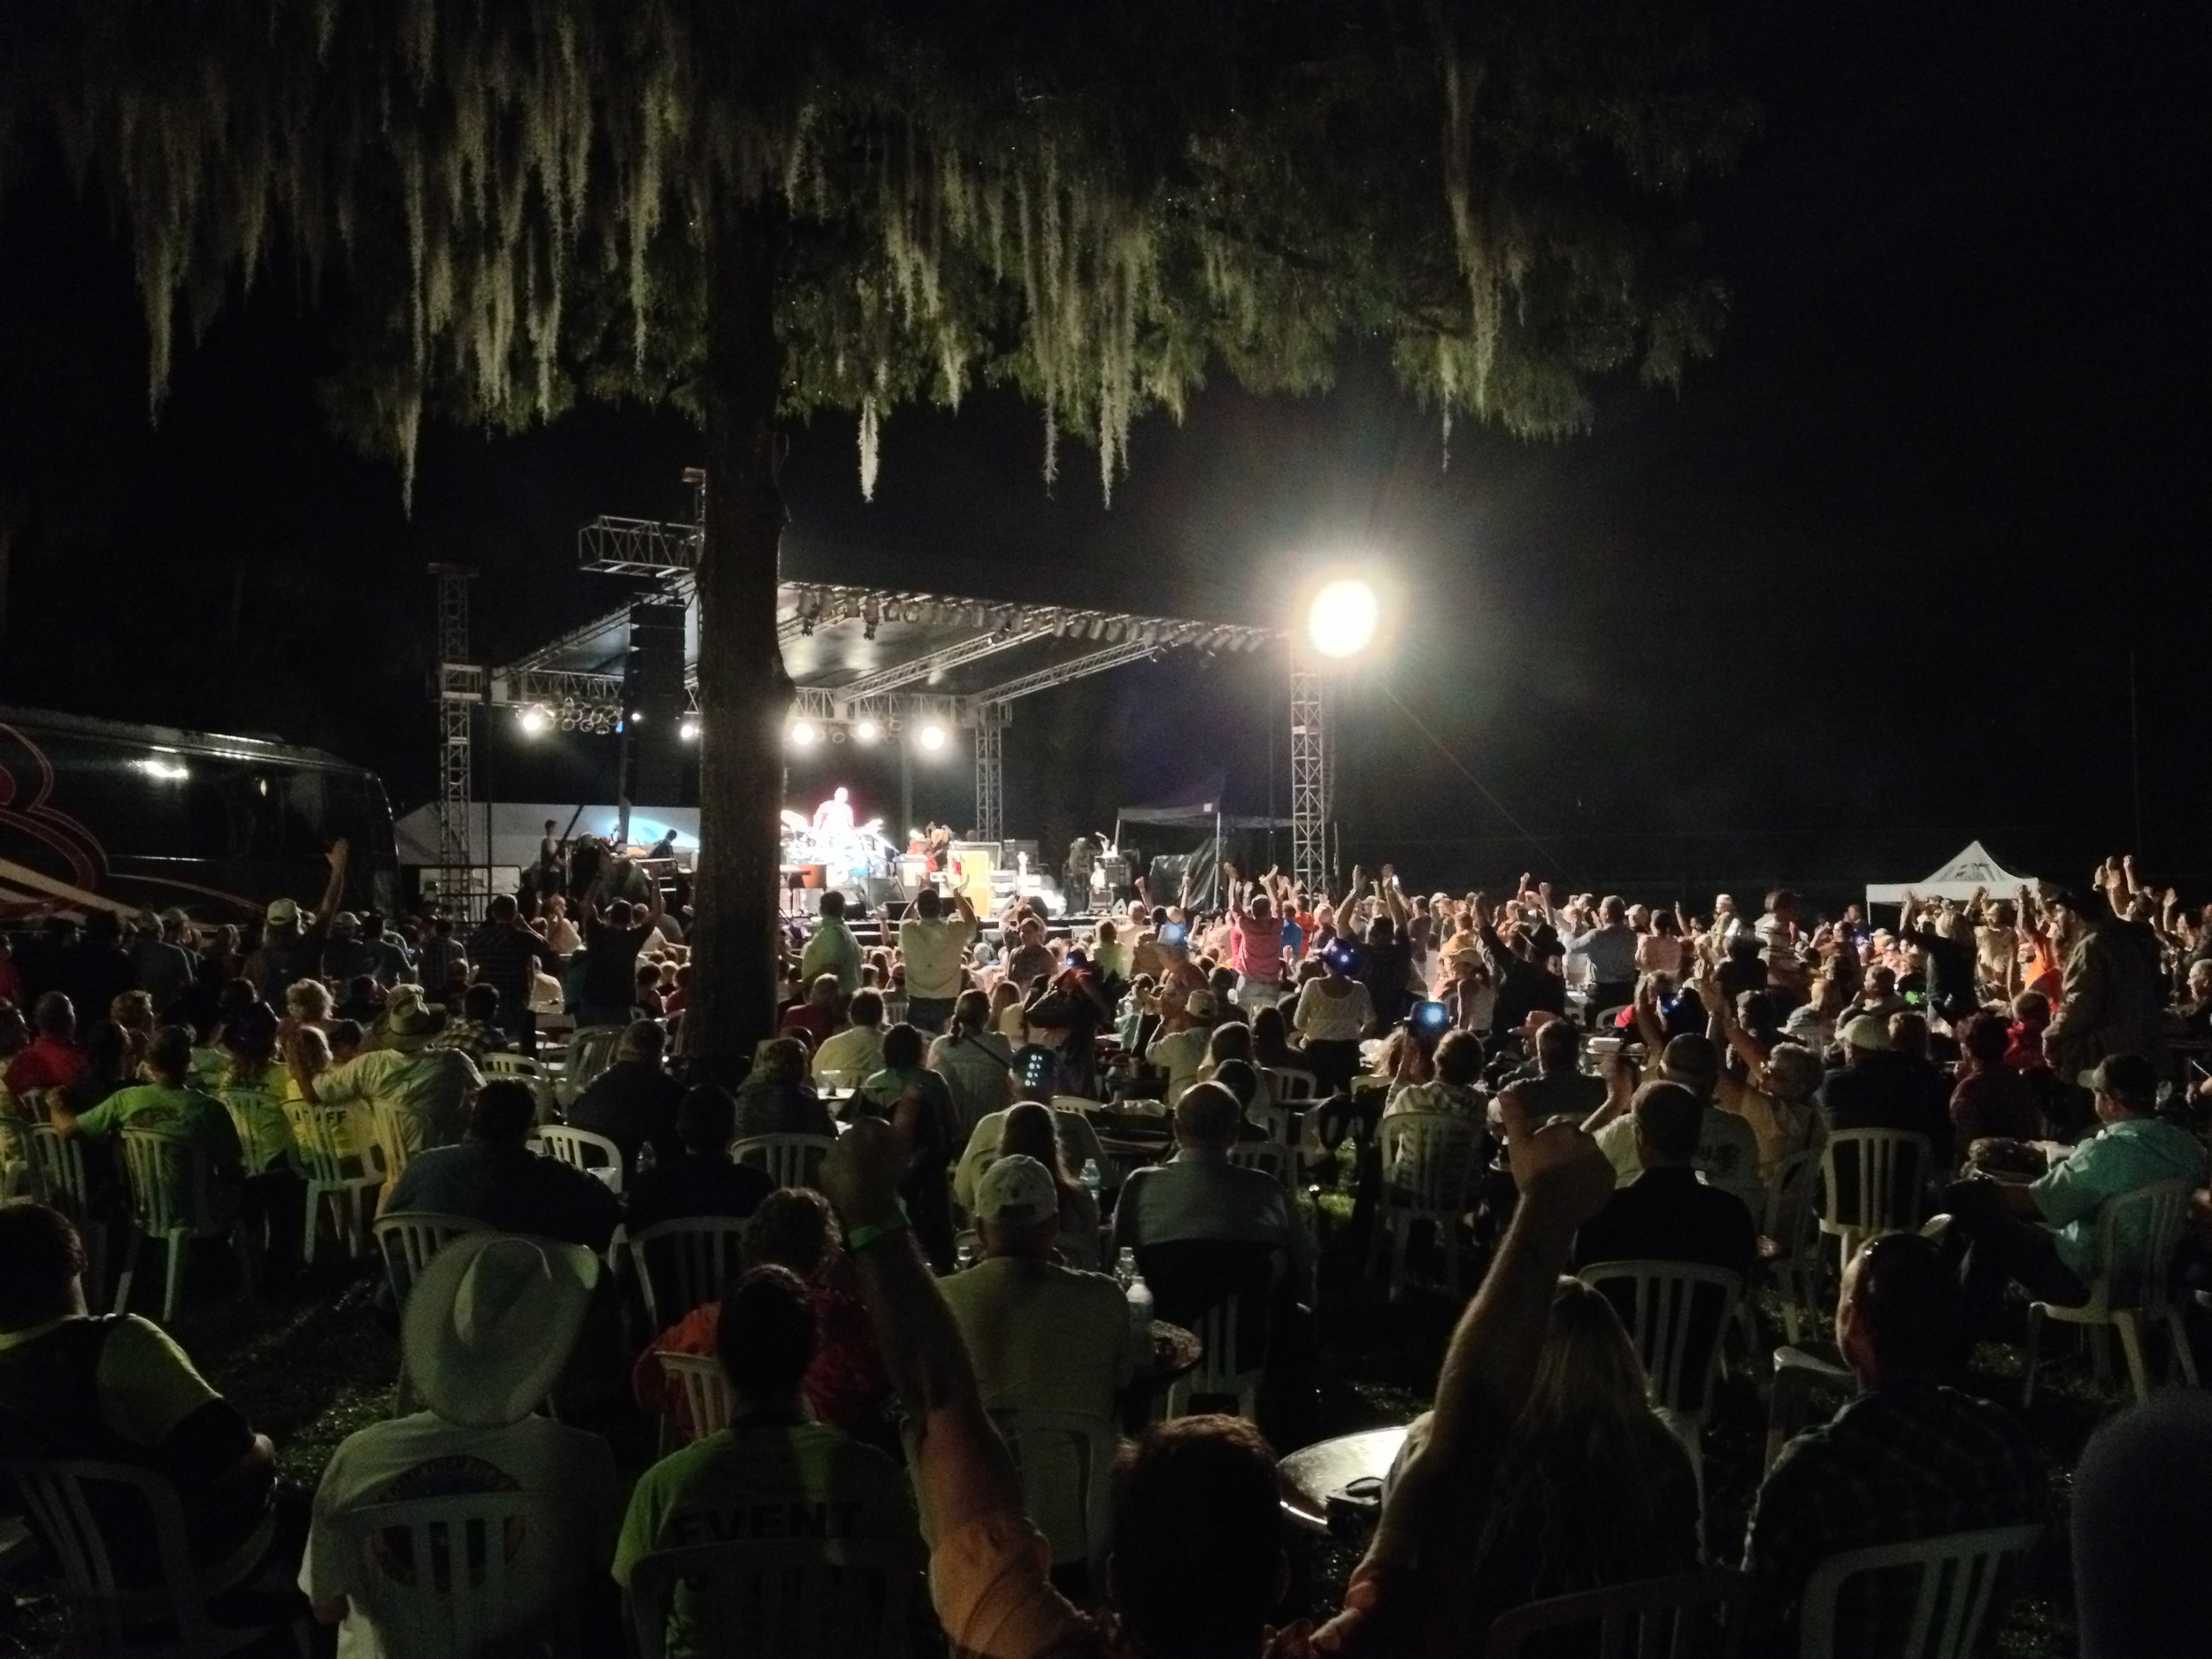 The Charlie Daniels Band firing up the crowd! September 27th, 2014